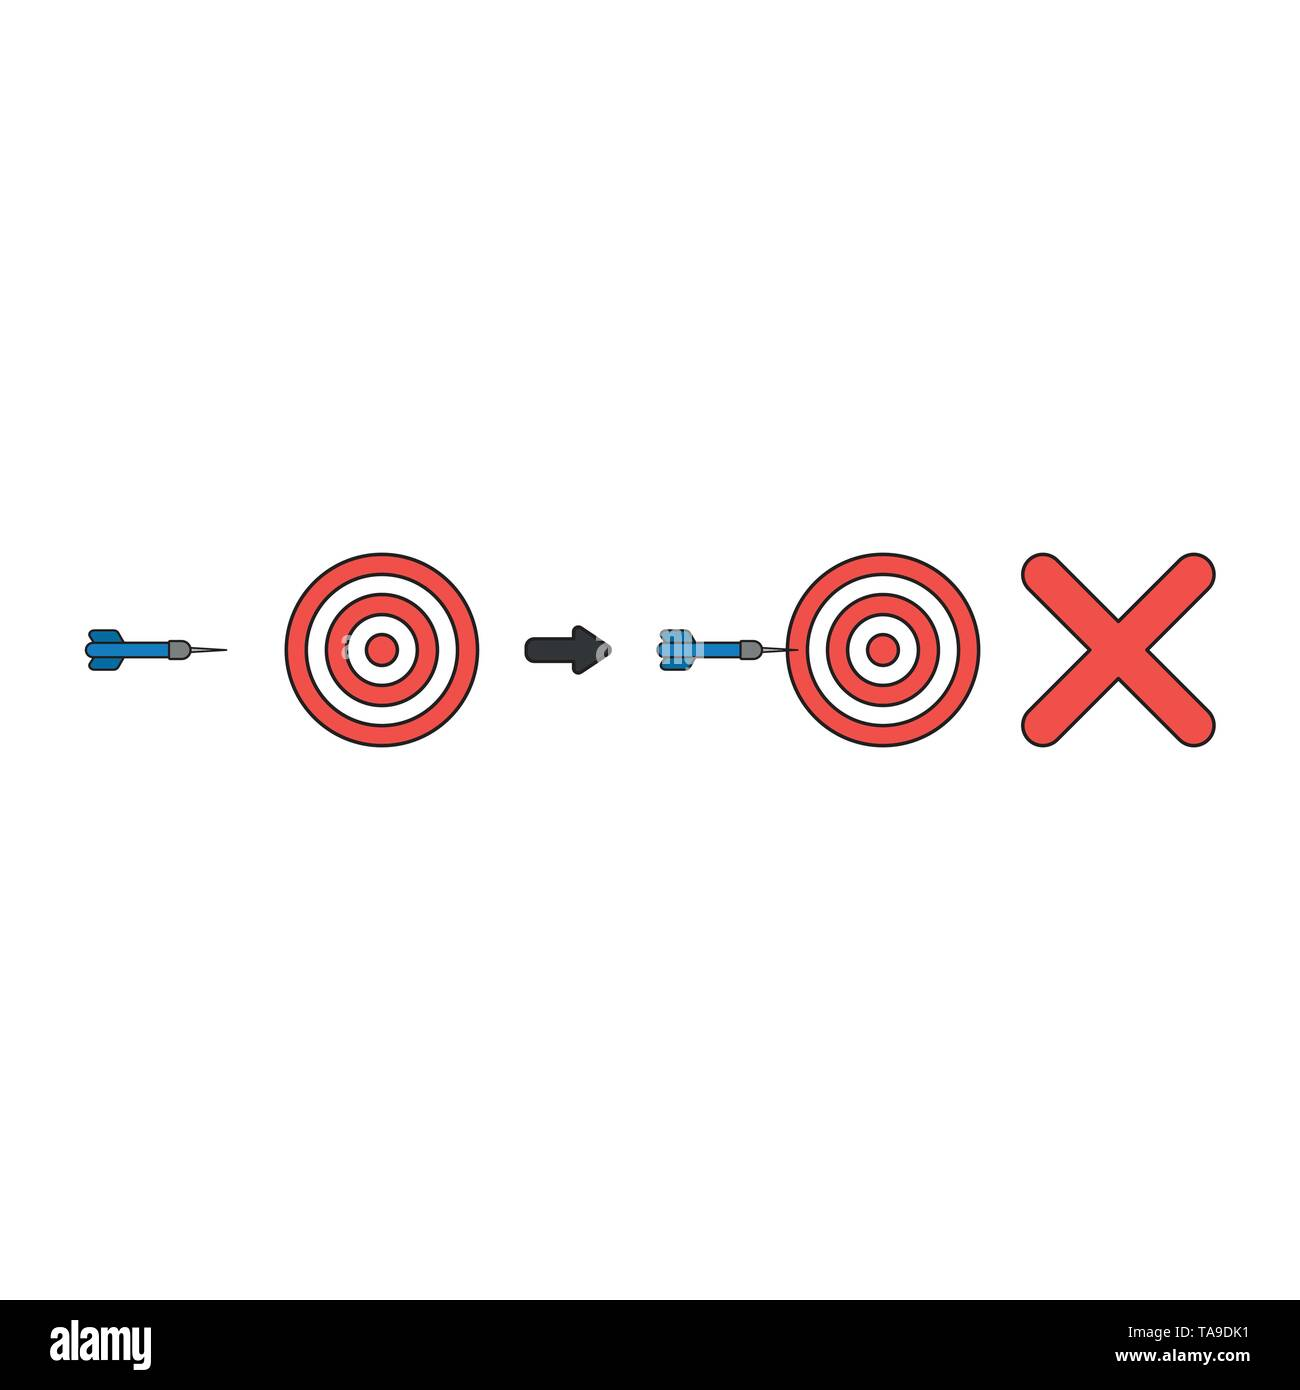 Vector icon concept of bulls eye and dart miss the target with x mark. Black outlines and colored. - Stock Image